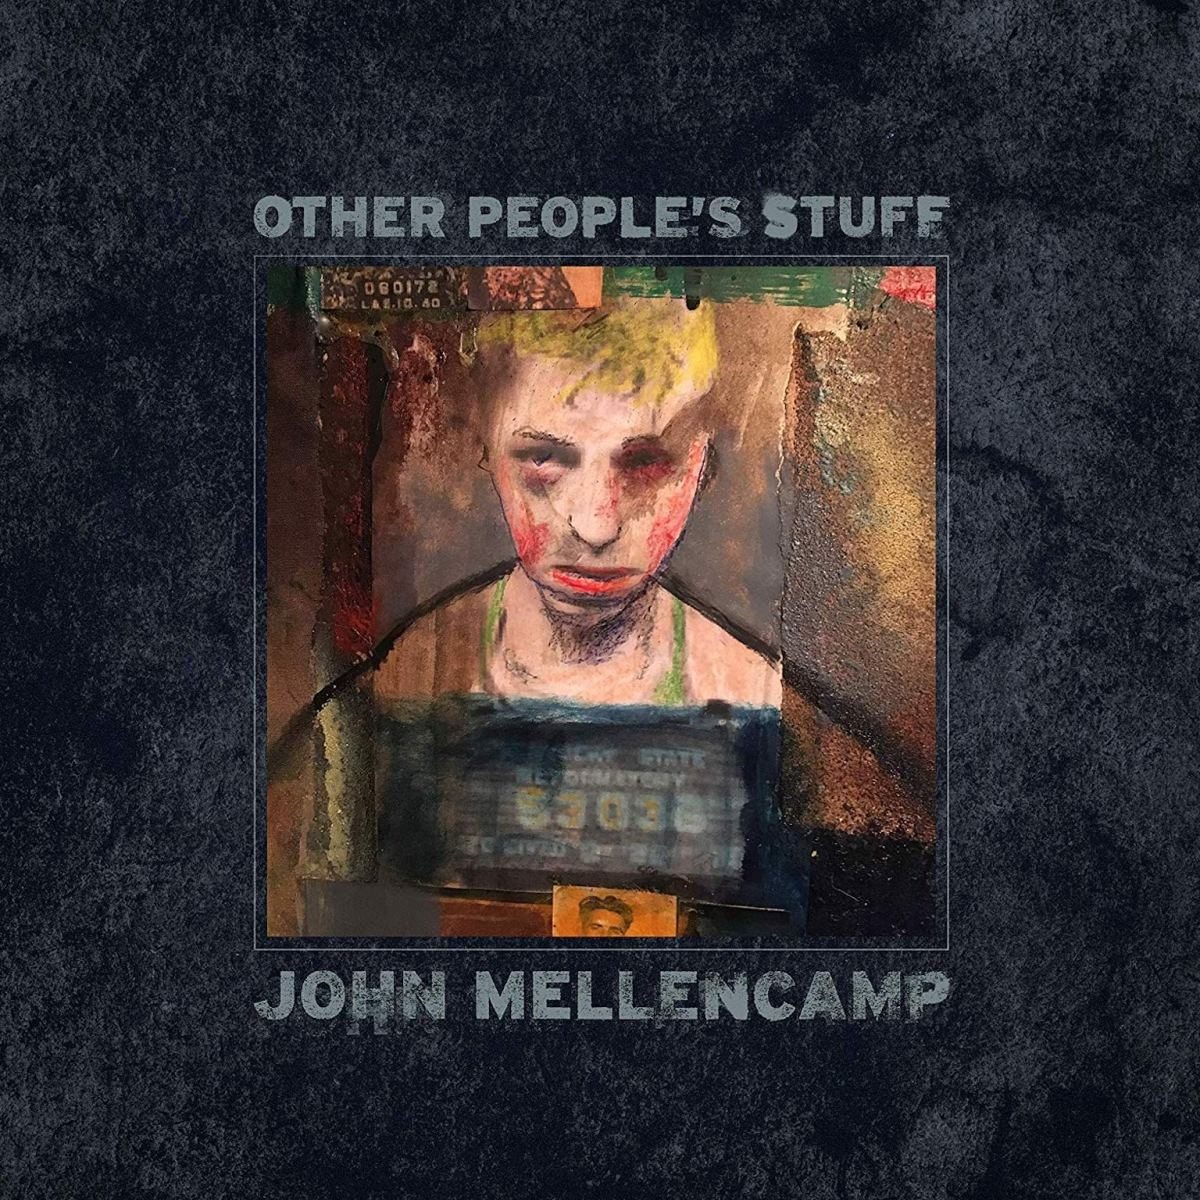 John Mellencamp | Other People's Stuff